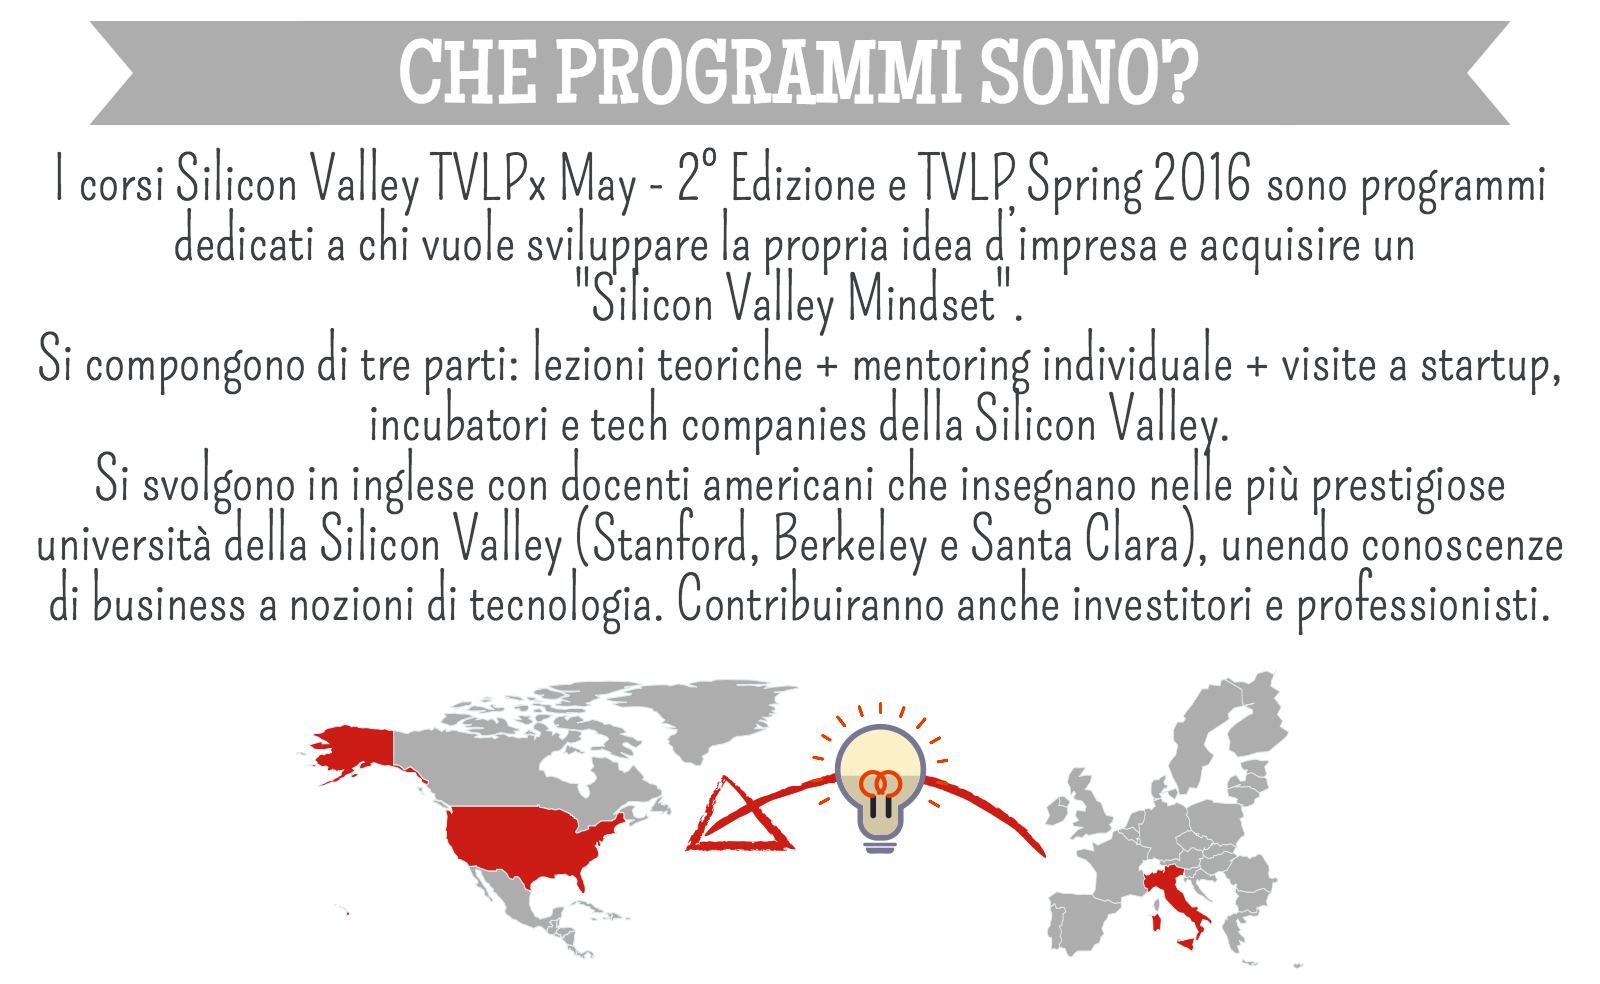 Programmi per startup in Silicon valley